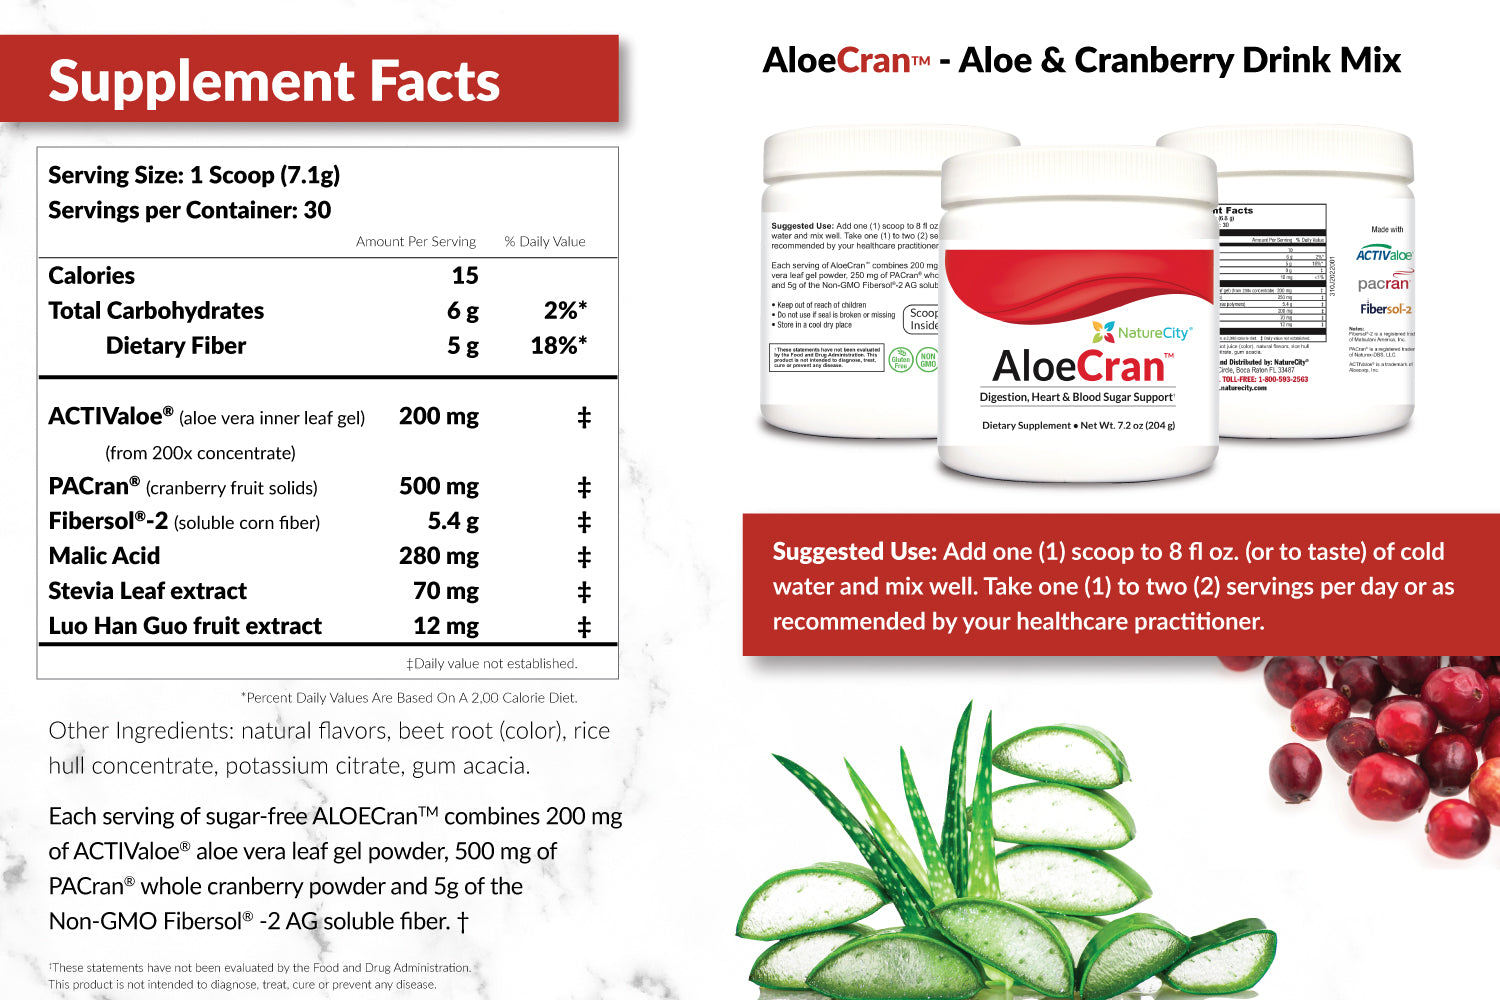 AloeCran Supplement Facts and Suggested Use